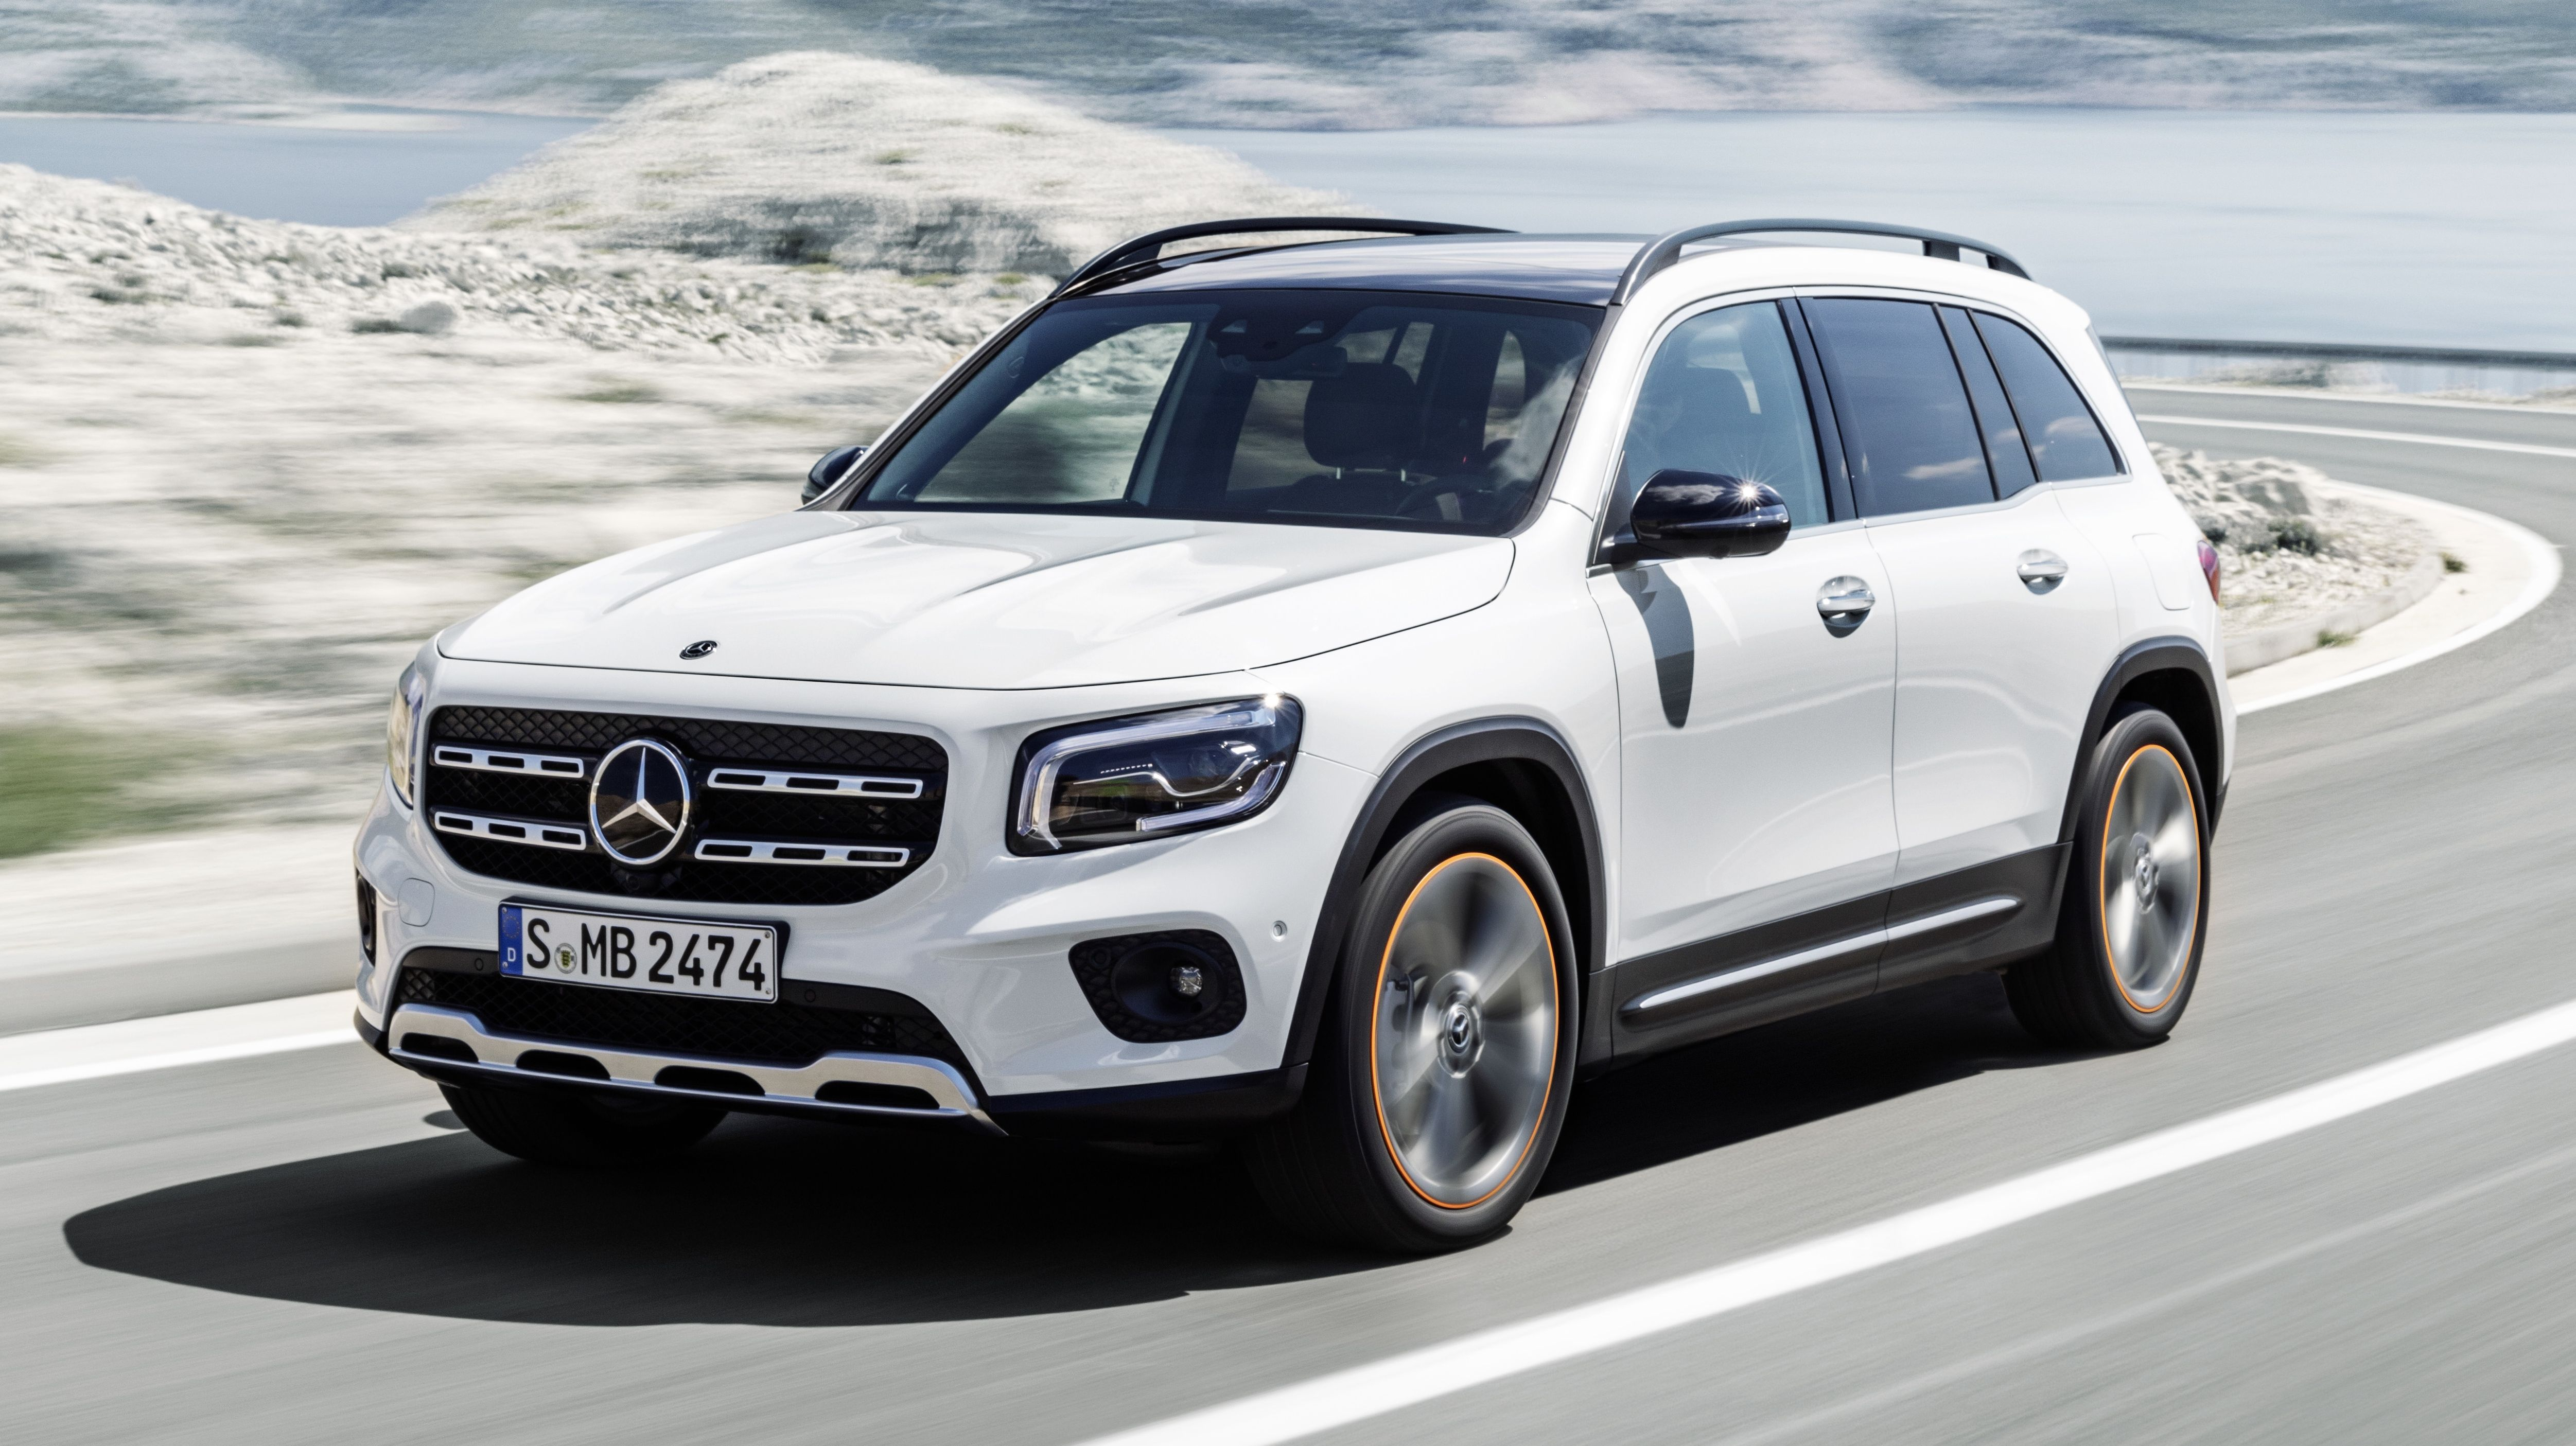 The 2020 Mercedes Benz Glb Seven Seater Compact Crossover Is The